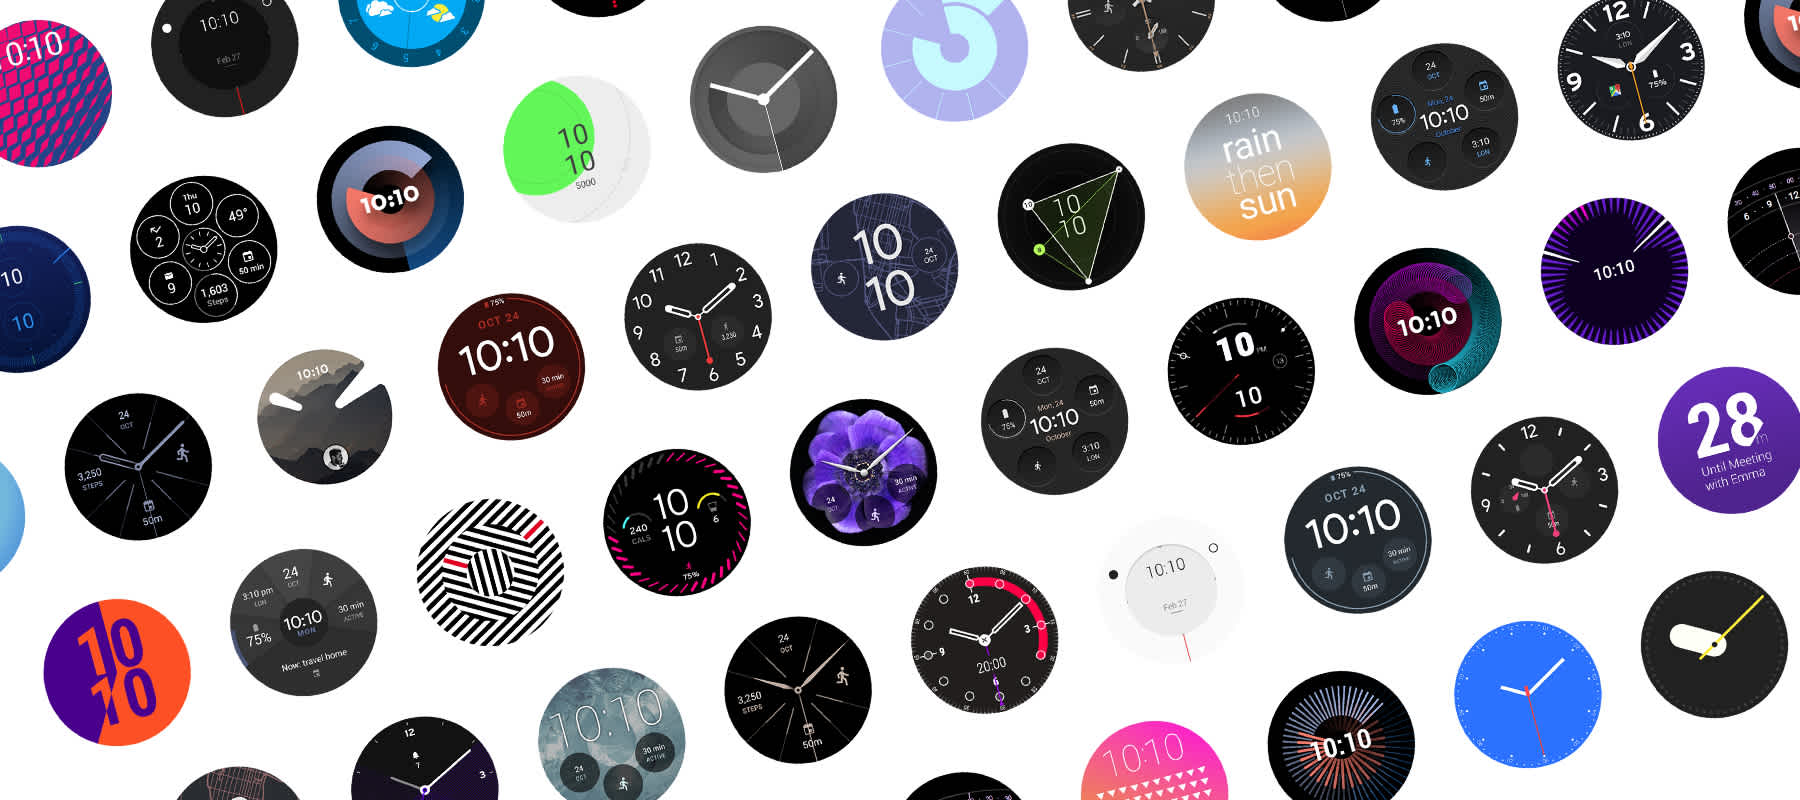 caseStudy-androidWear